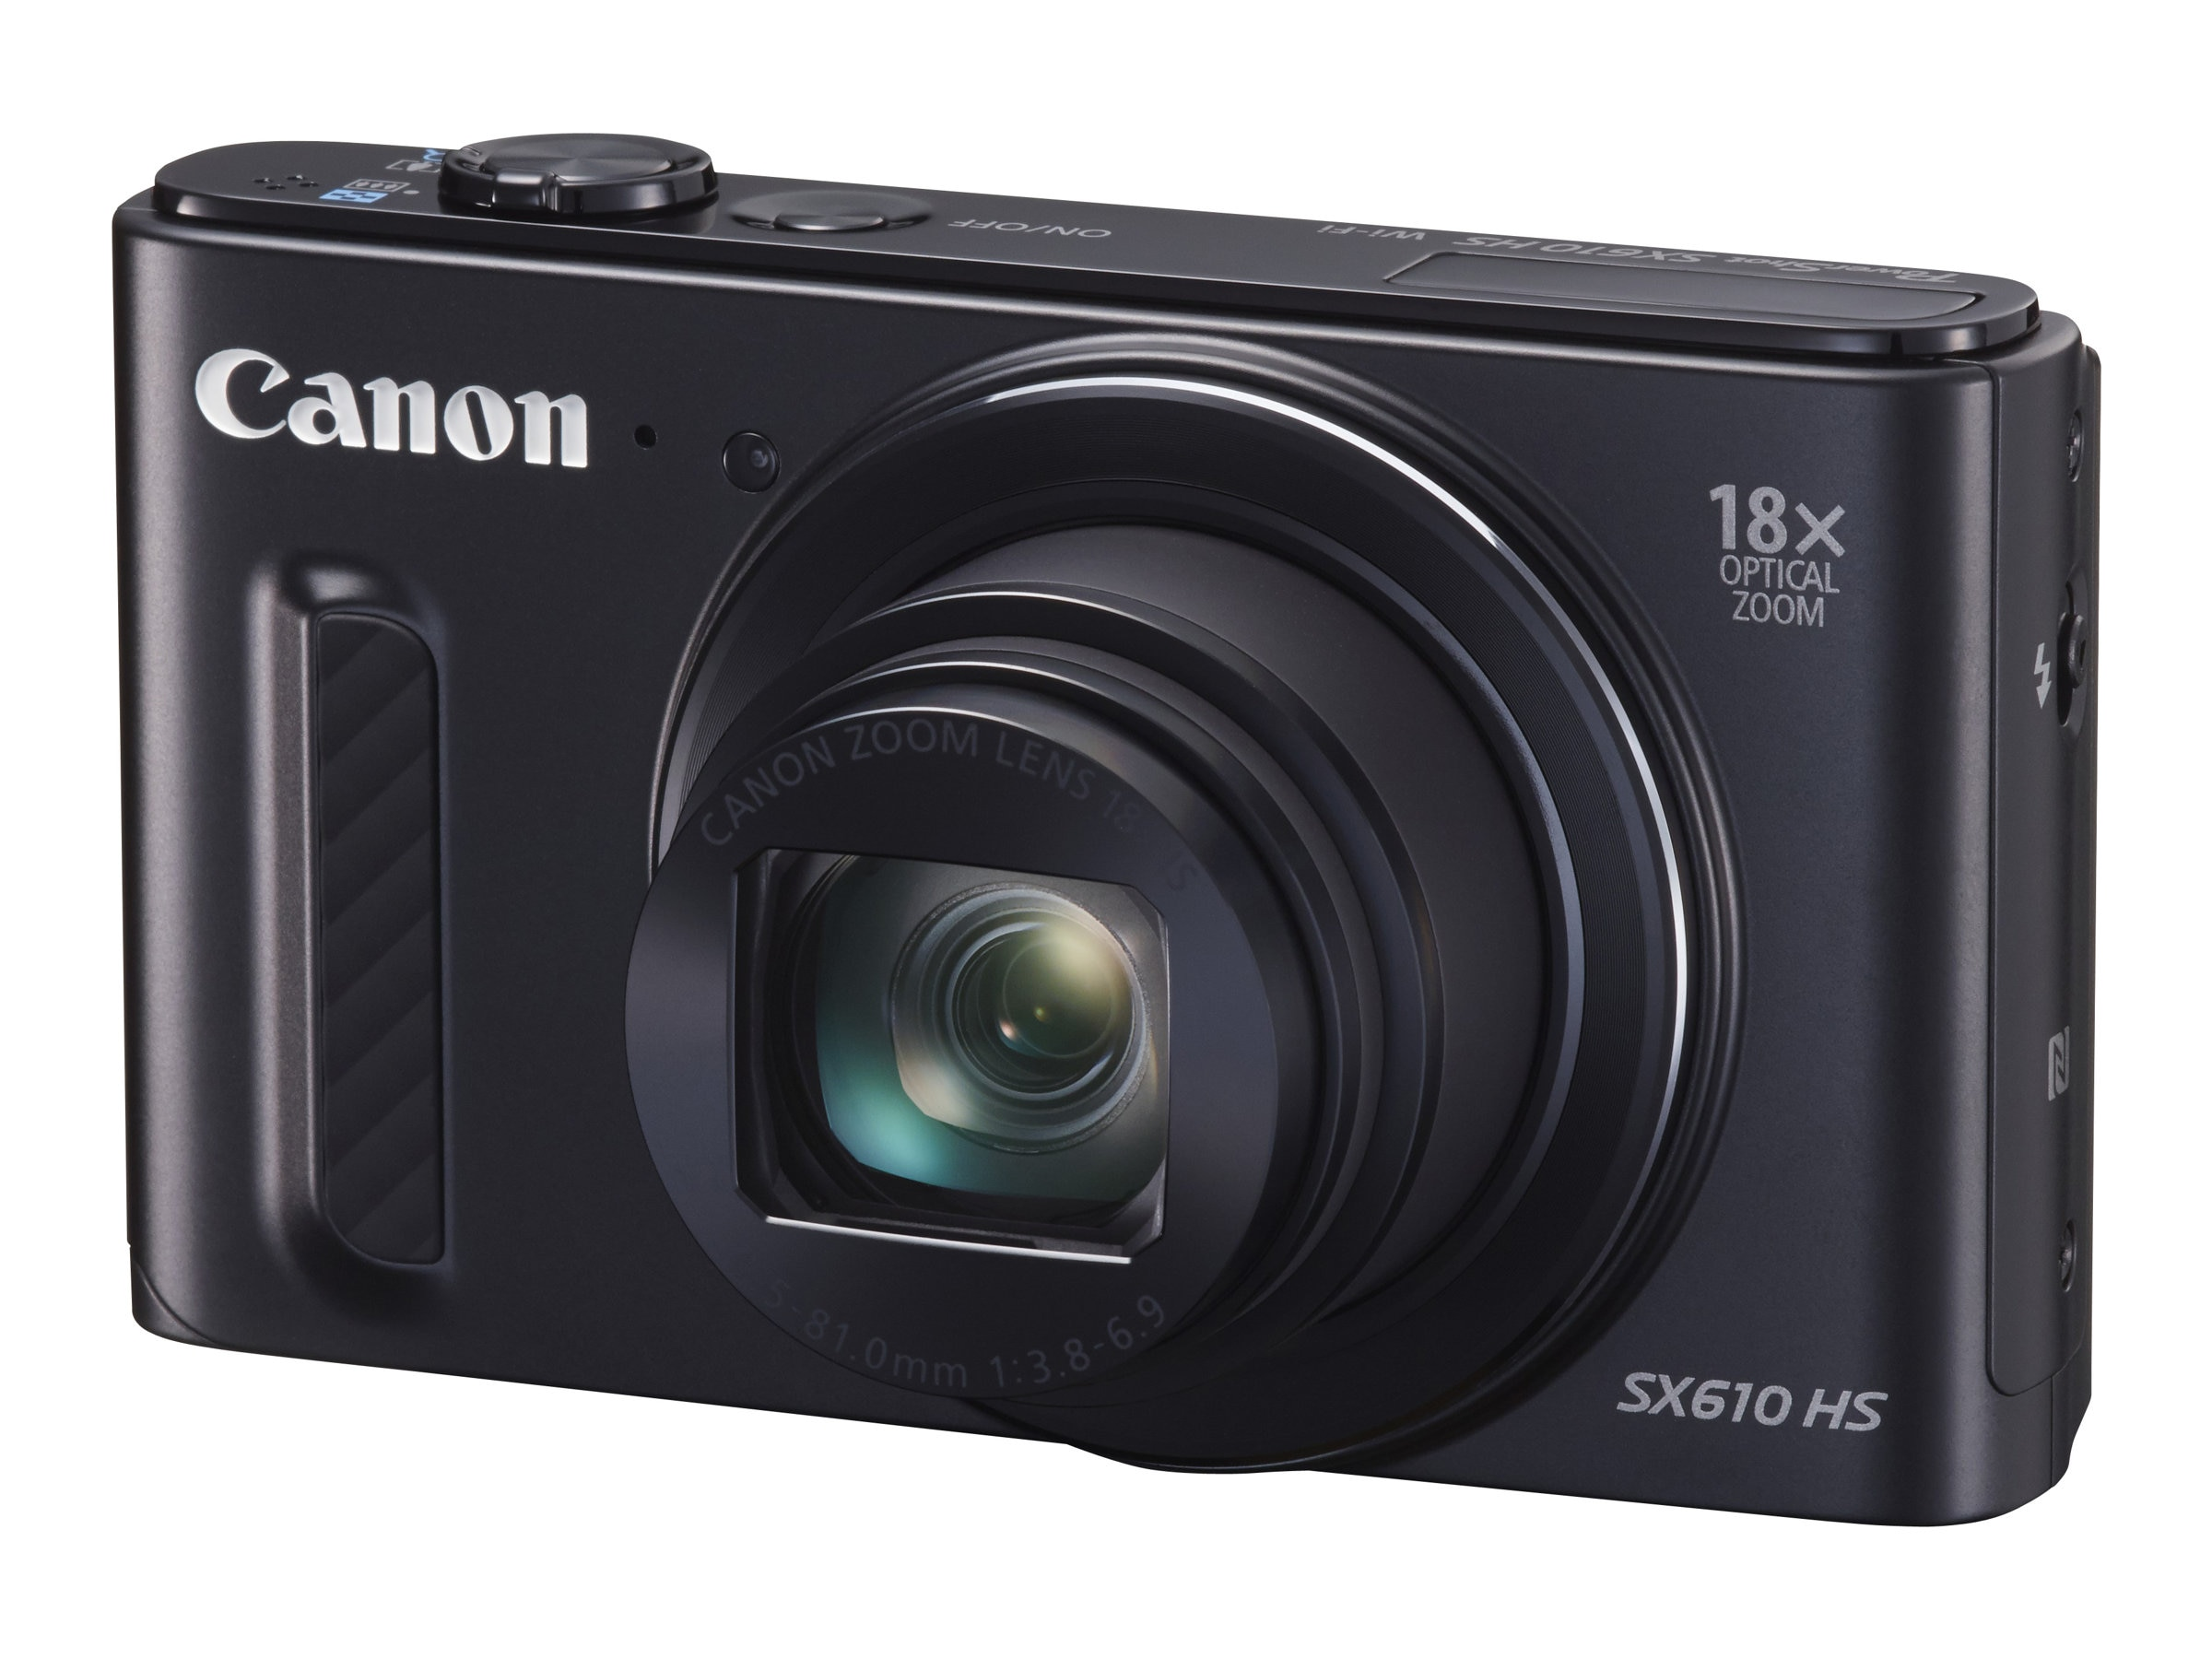 Canon Powershot SX610 HS Camera, 20.2MP, 18x Zoom, Black, 0111C001, 18524275, Cameras - Digital - Point & Shoot